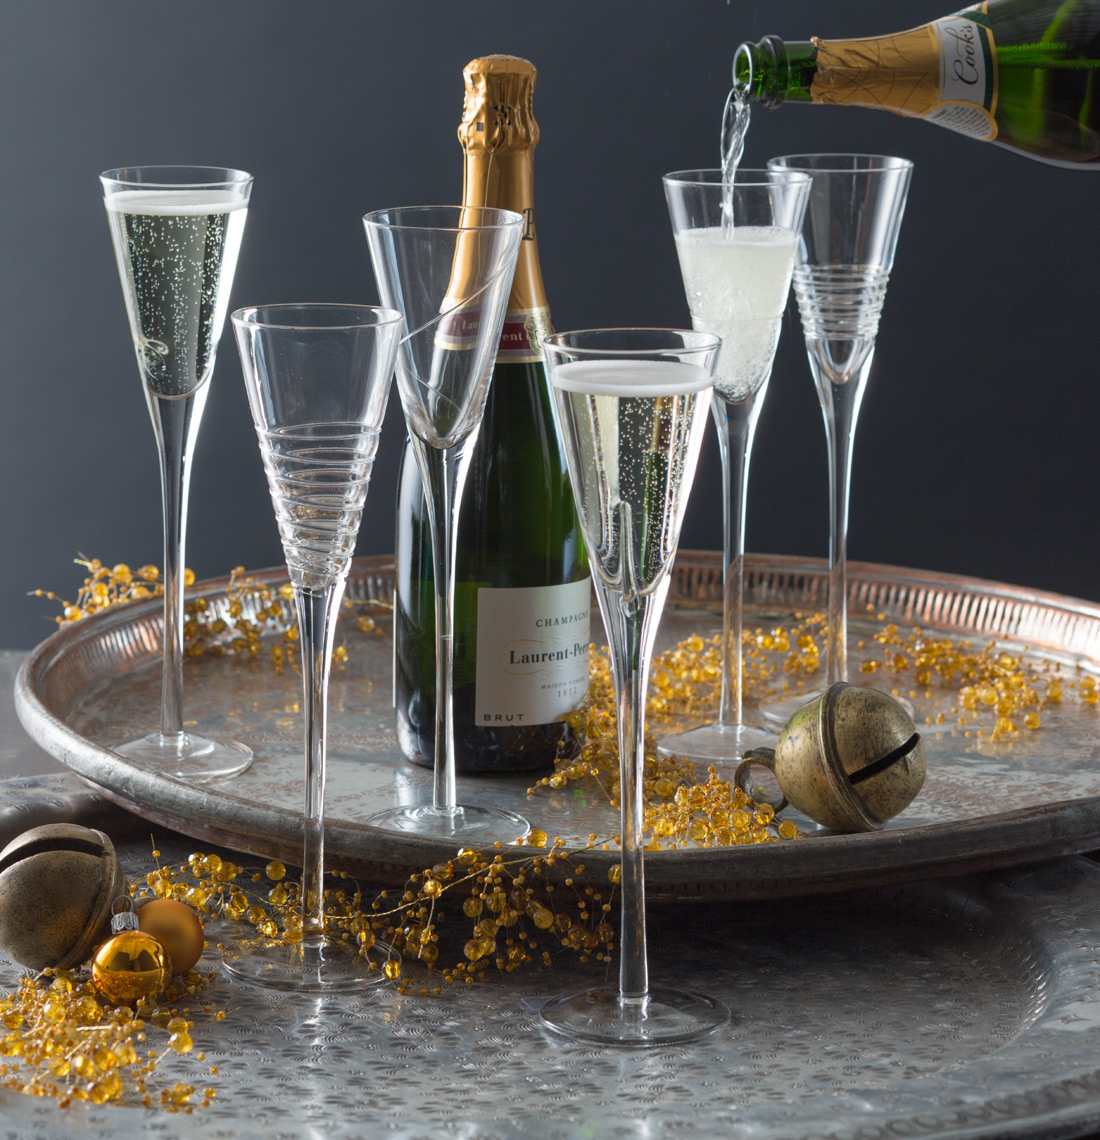 6 champagne flutes on a silver tray with 2 bottles of champagne